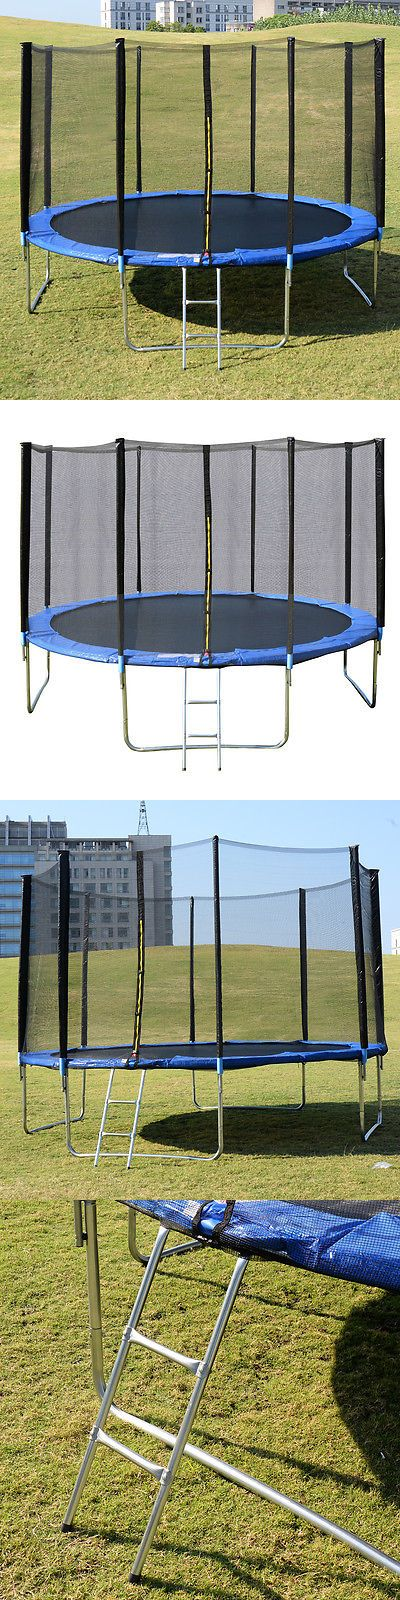 Trampolines 145999: New 14Ft Trampoline Combo Bounce Jump Safety Enclosure Net W Spring Pad Ladder -> BUY IT NOW ONLY: $279.99 on eBay!